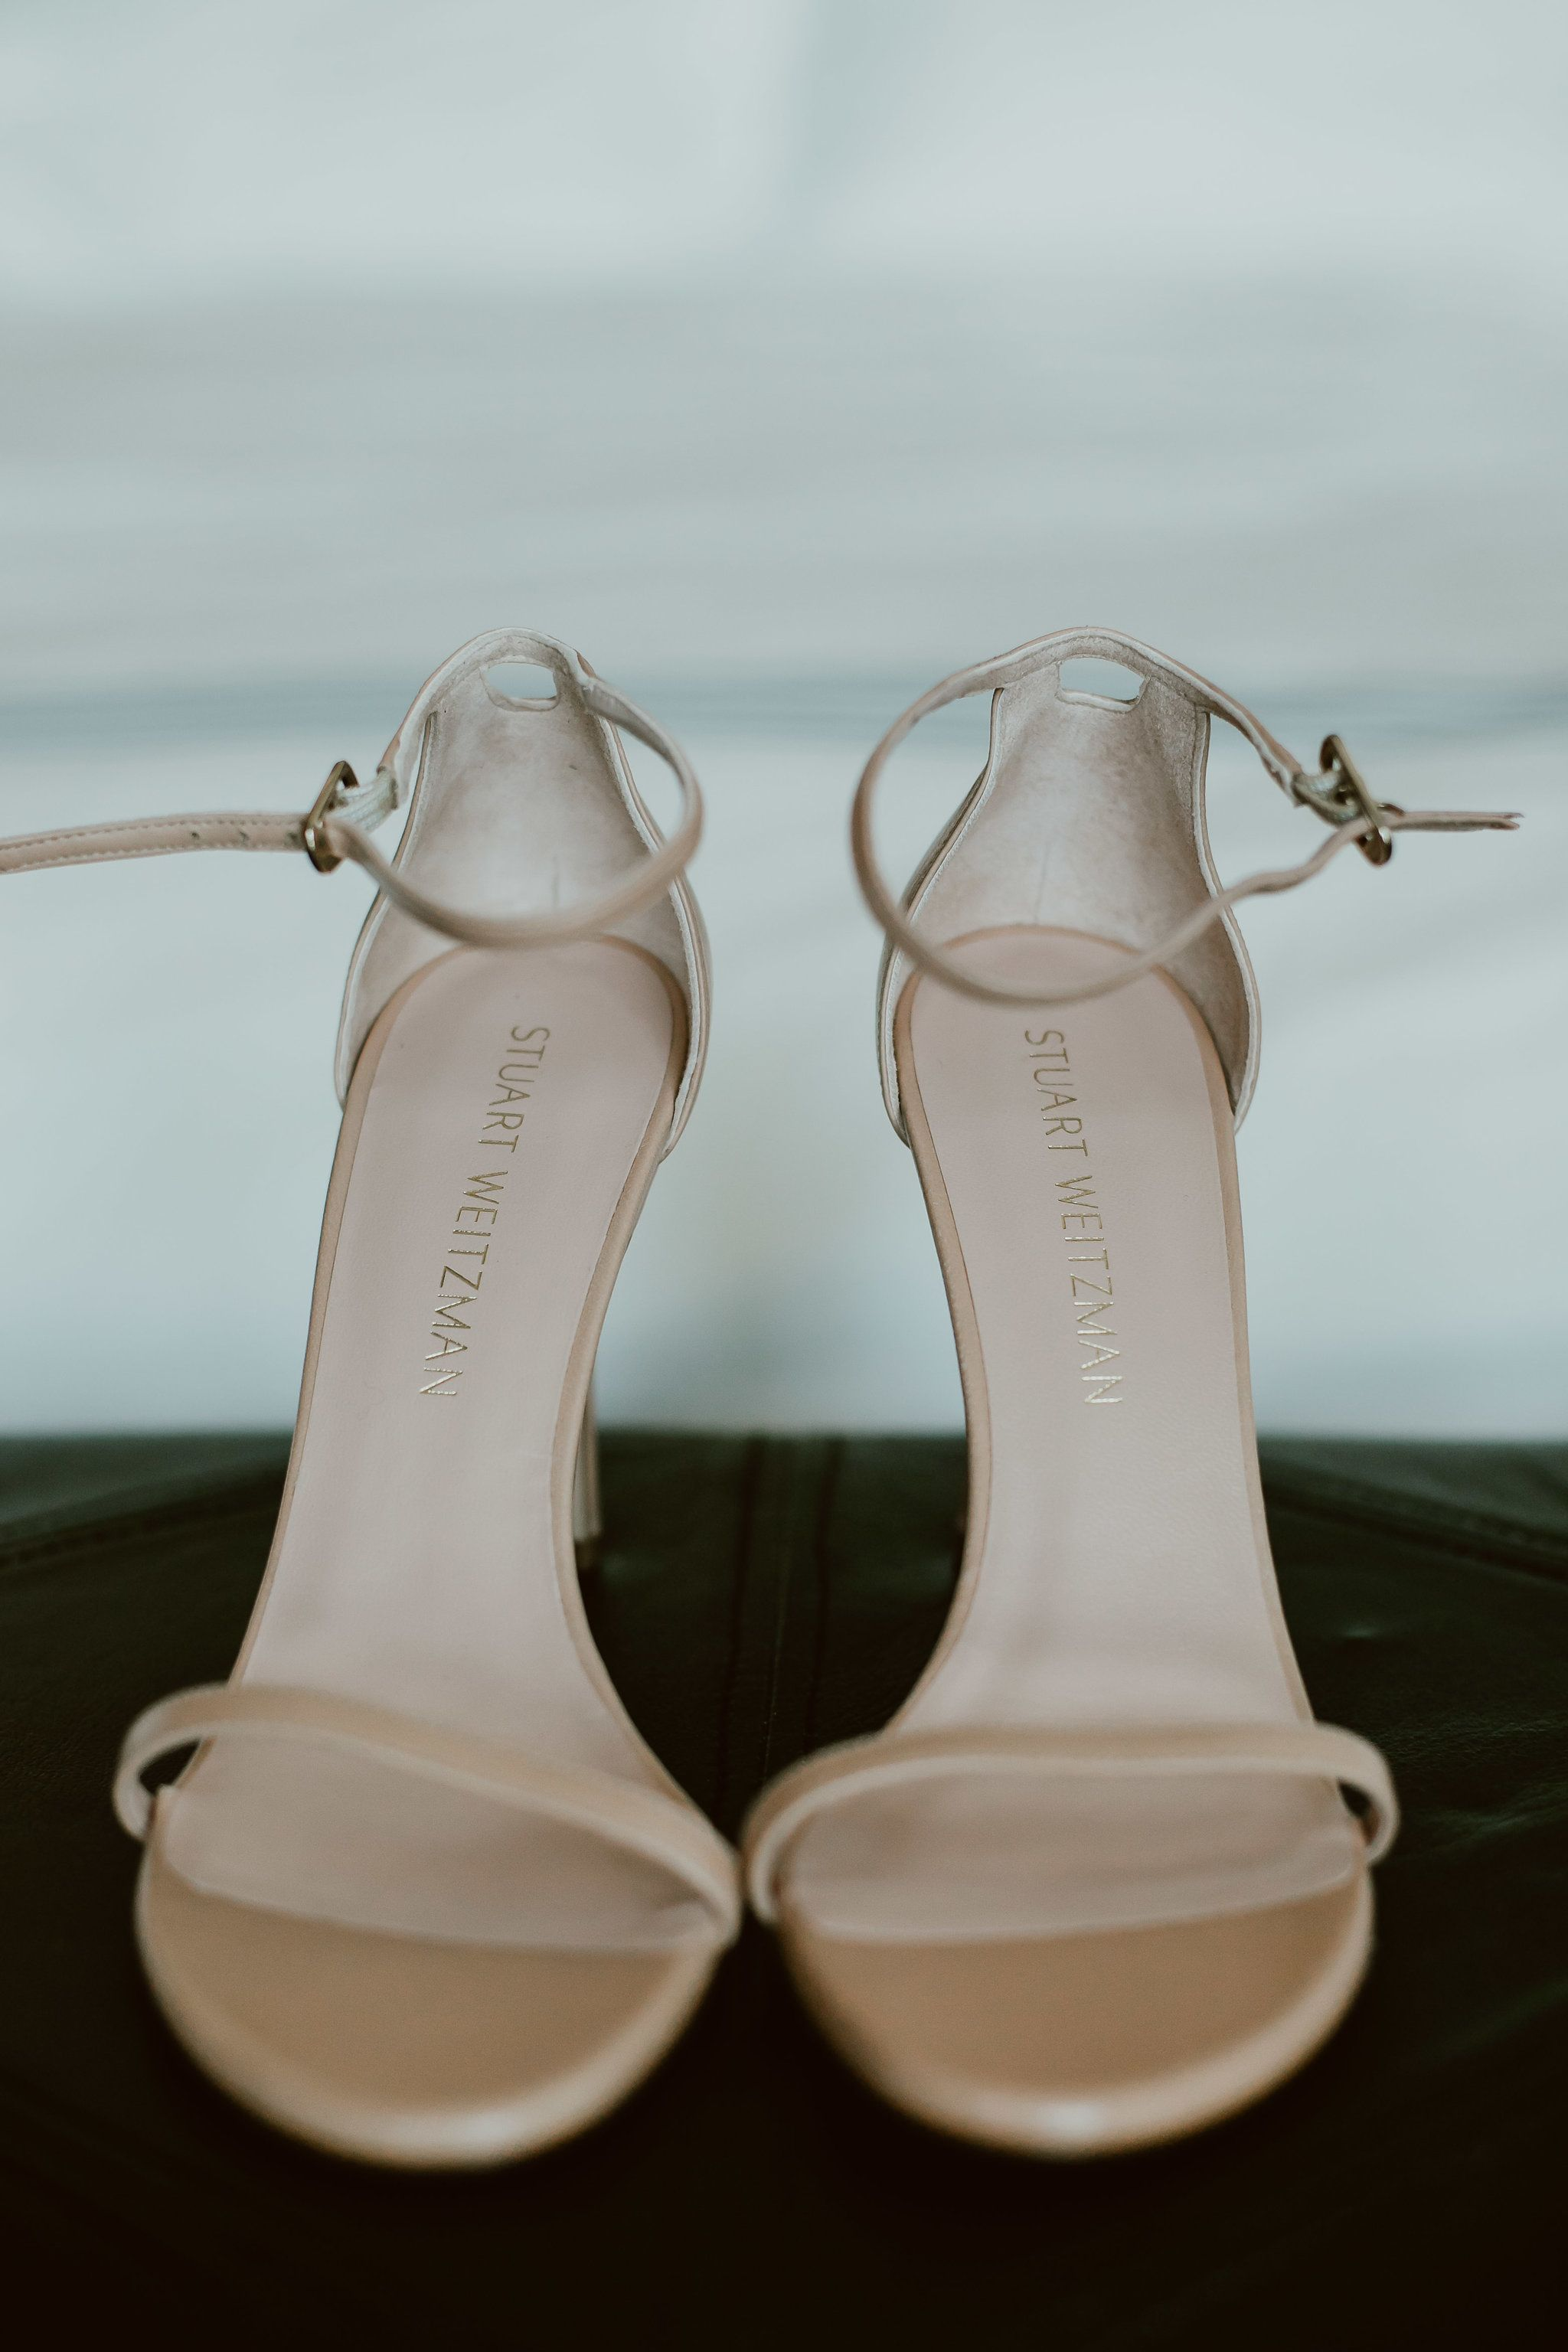 Stuart Weitzman Shoes for Wedding Day at The Cape by Thompson Hotels in Los Cabos Mexico